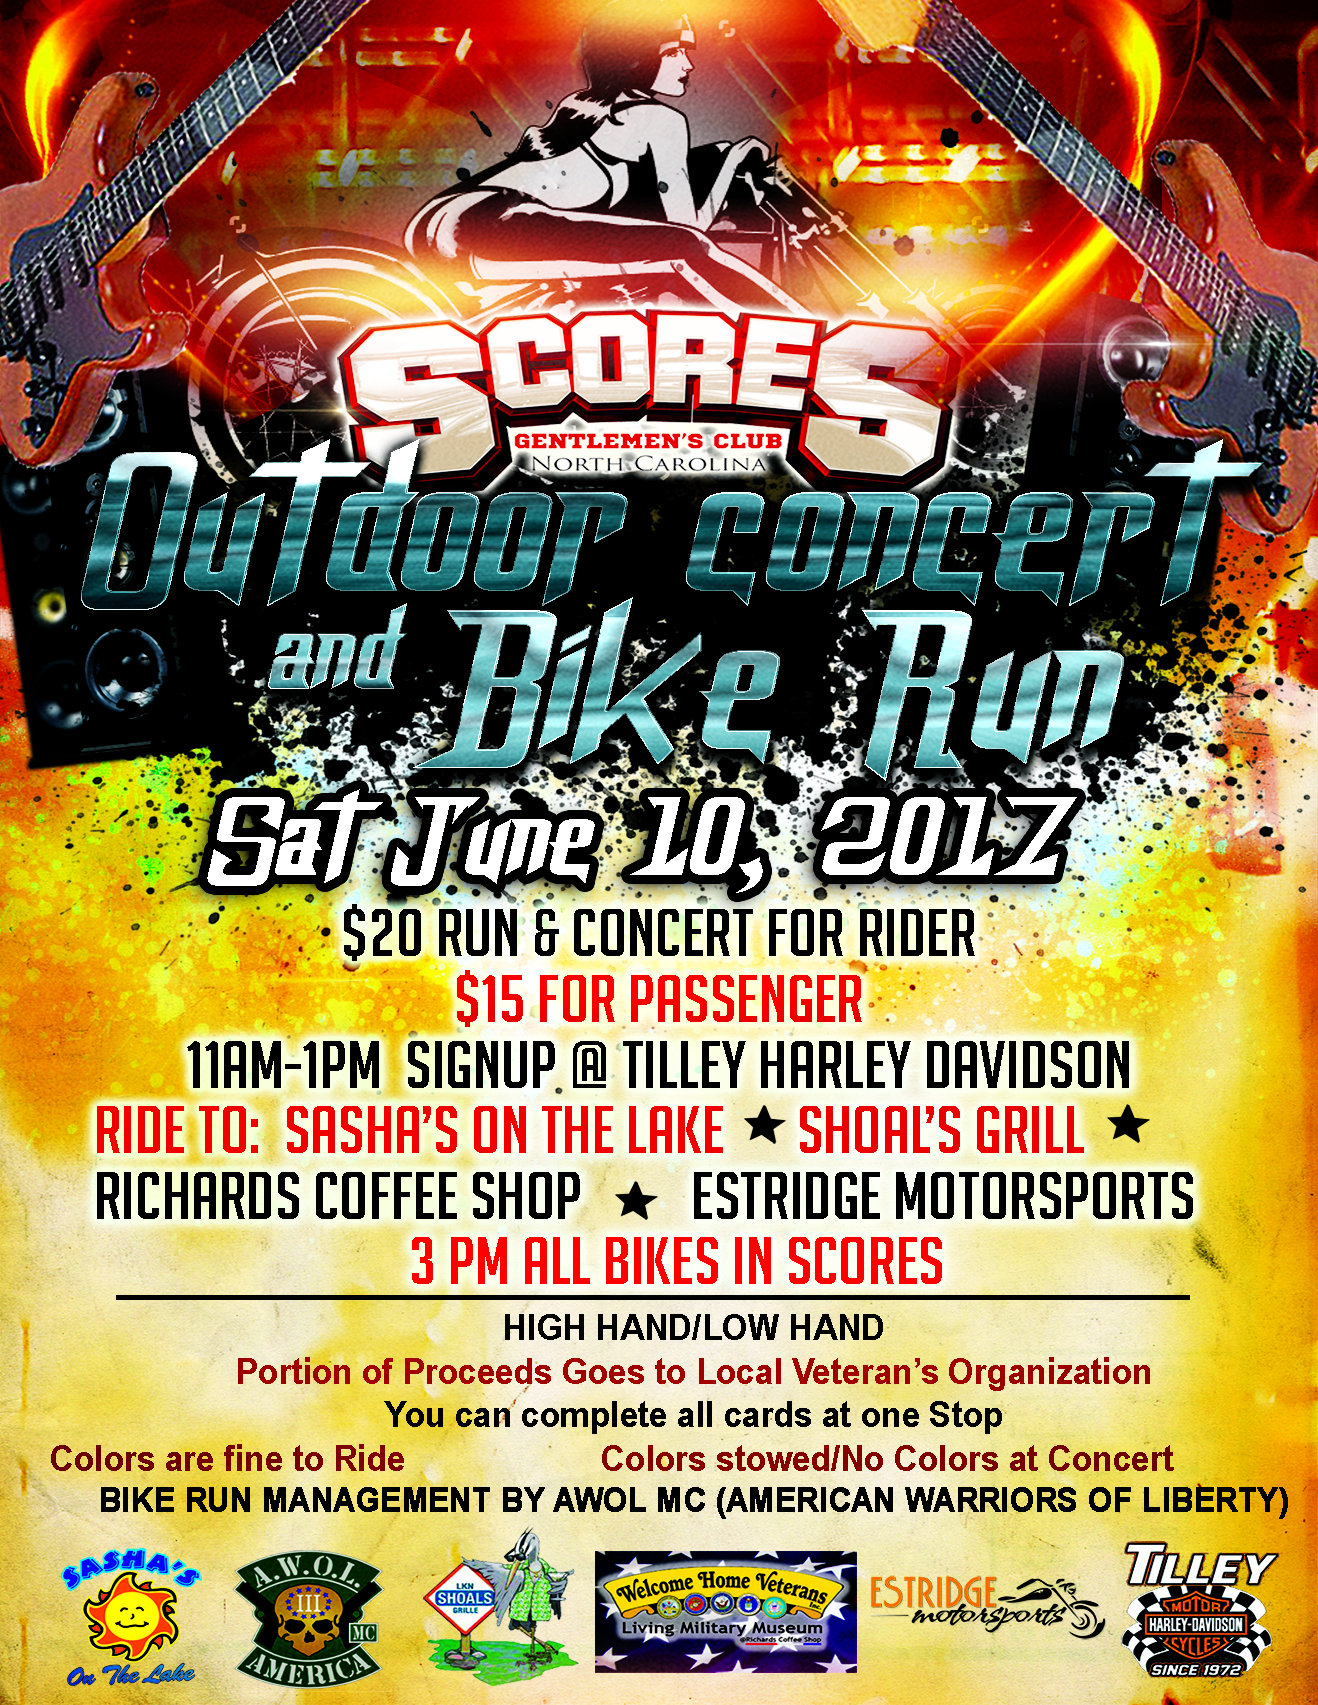 Outdoor Concert & Bike Run @ SCORES Gentlemen's Club | Mooresville | North Carolina | United States